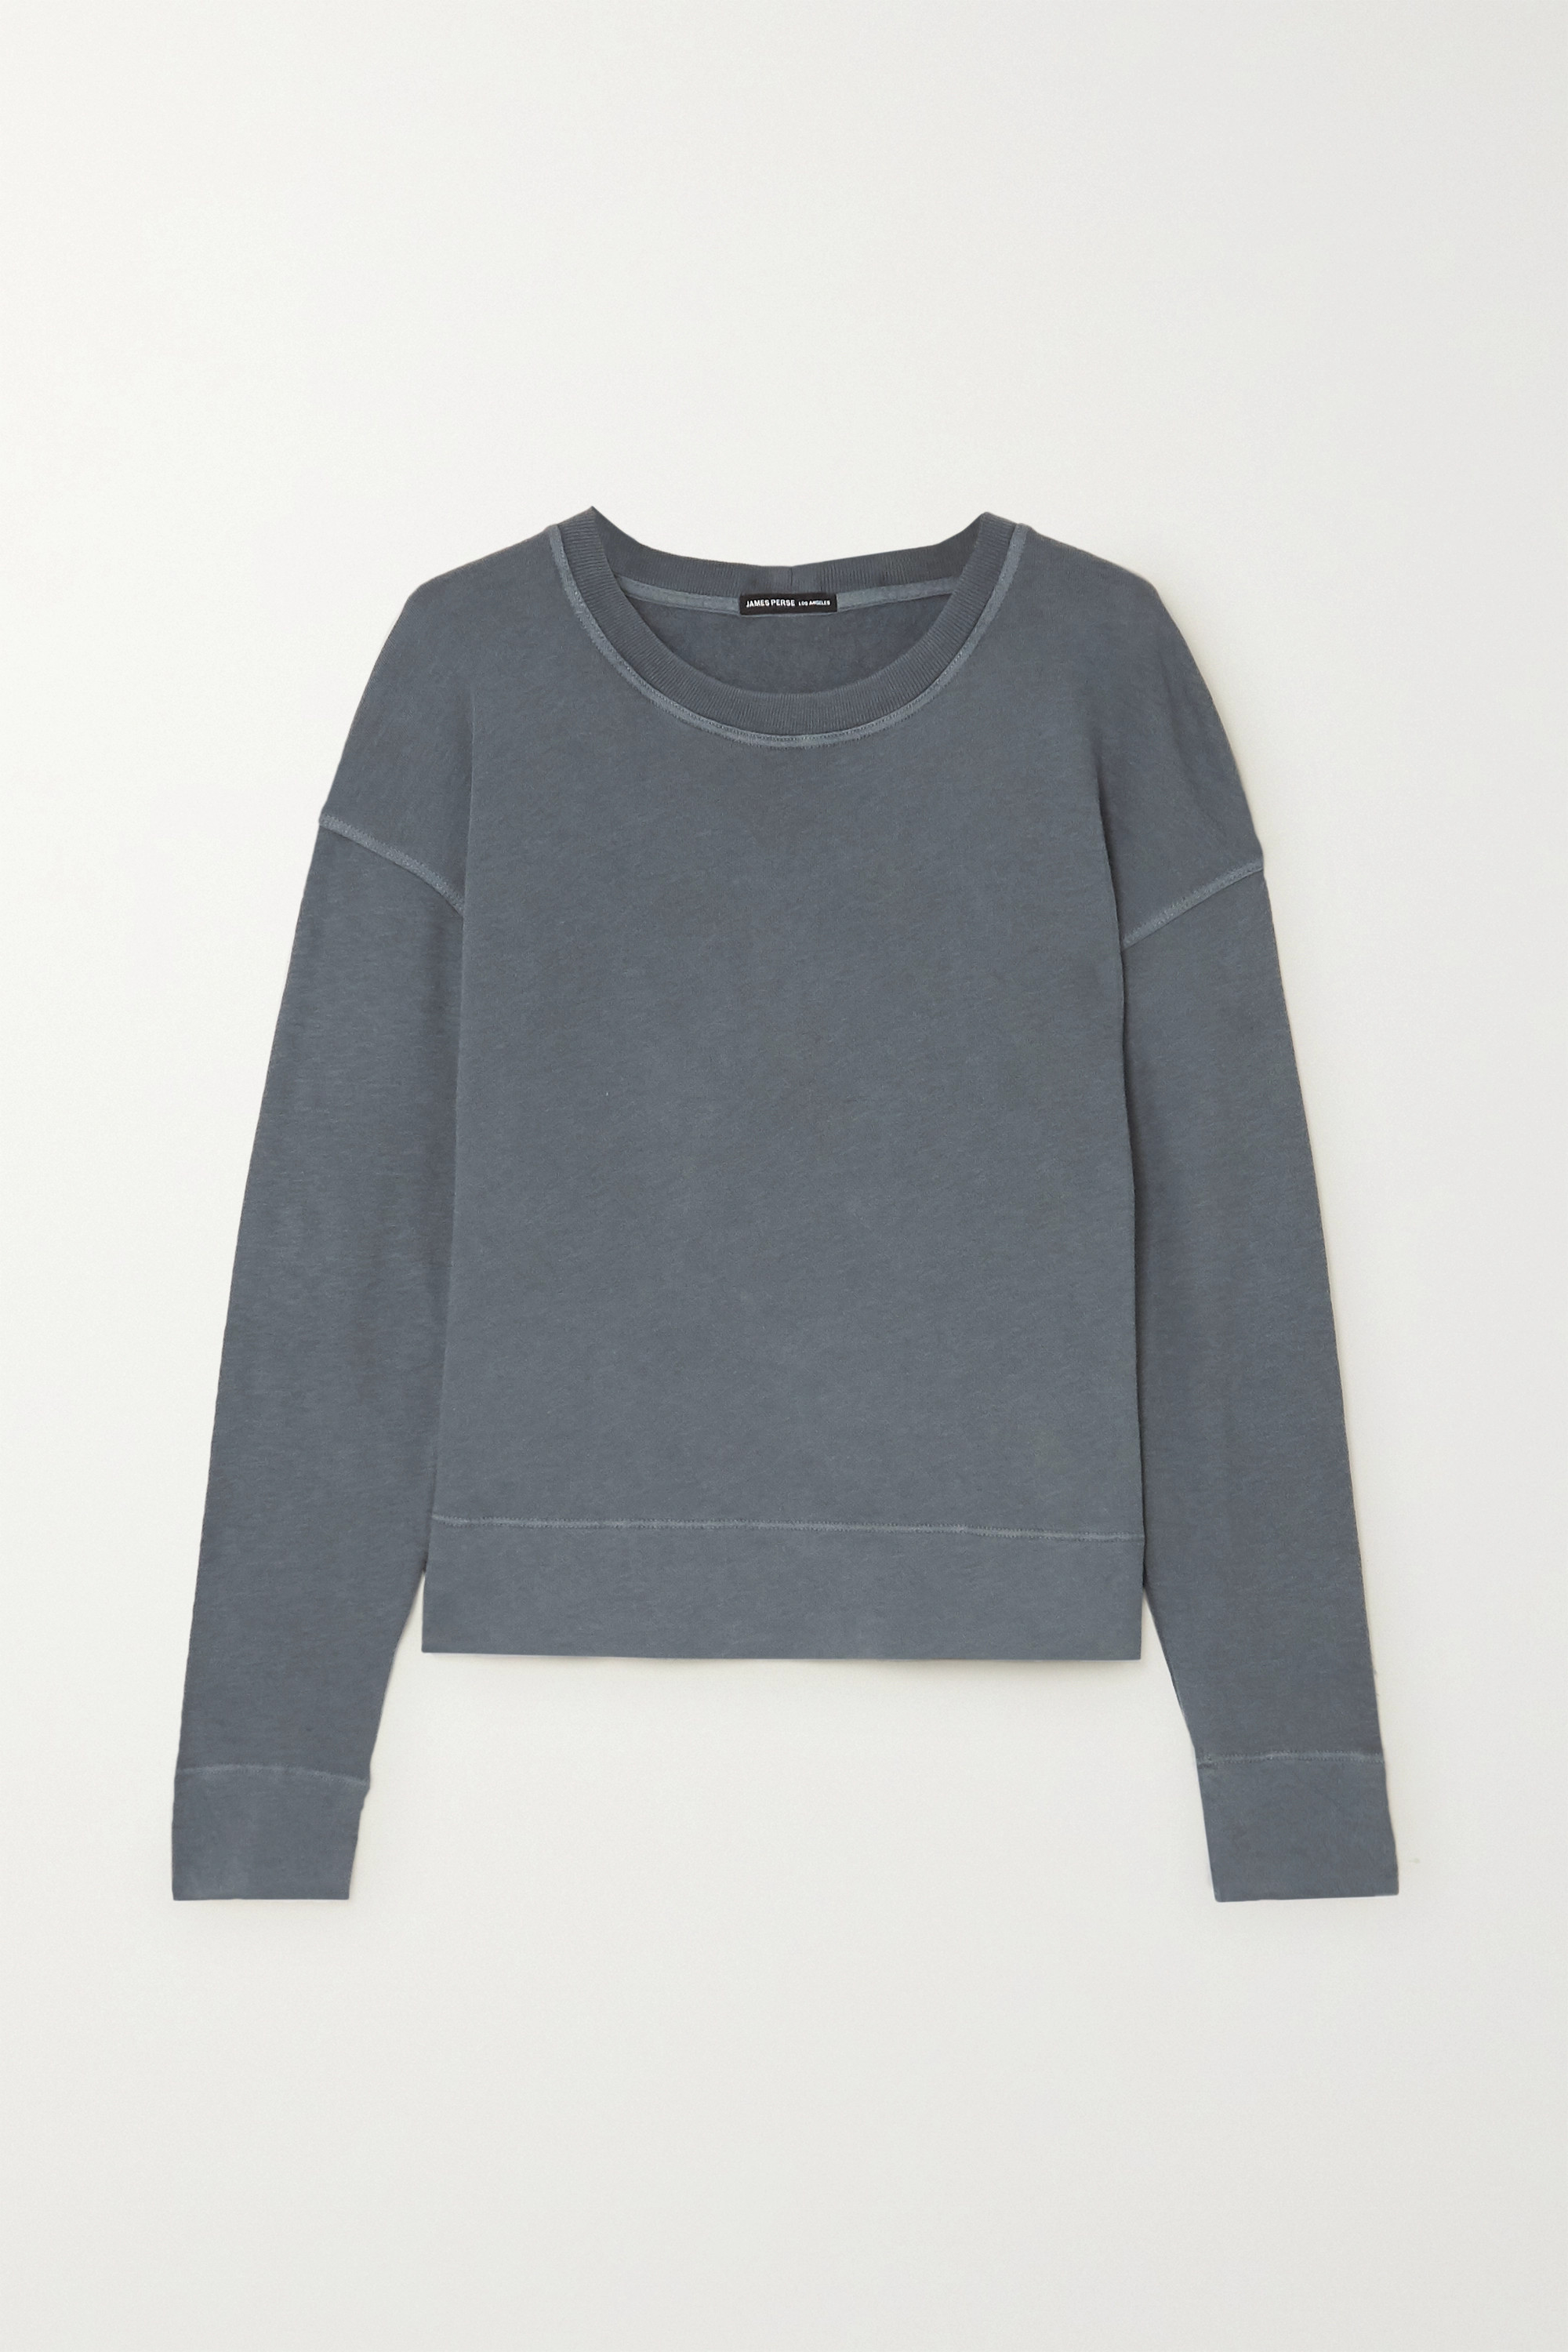 James Perse Supima cotton-terry top